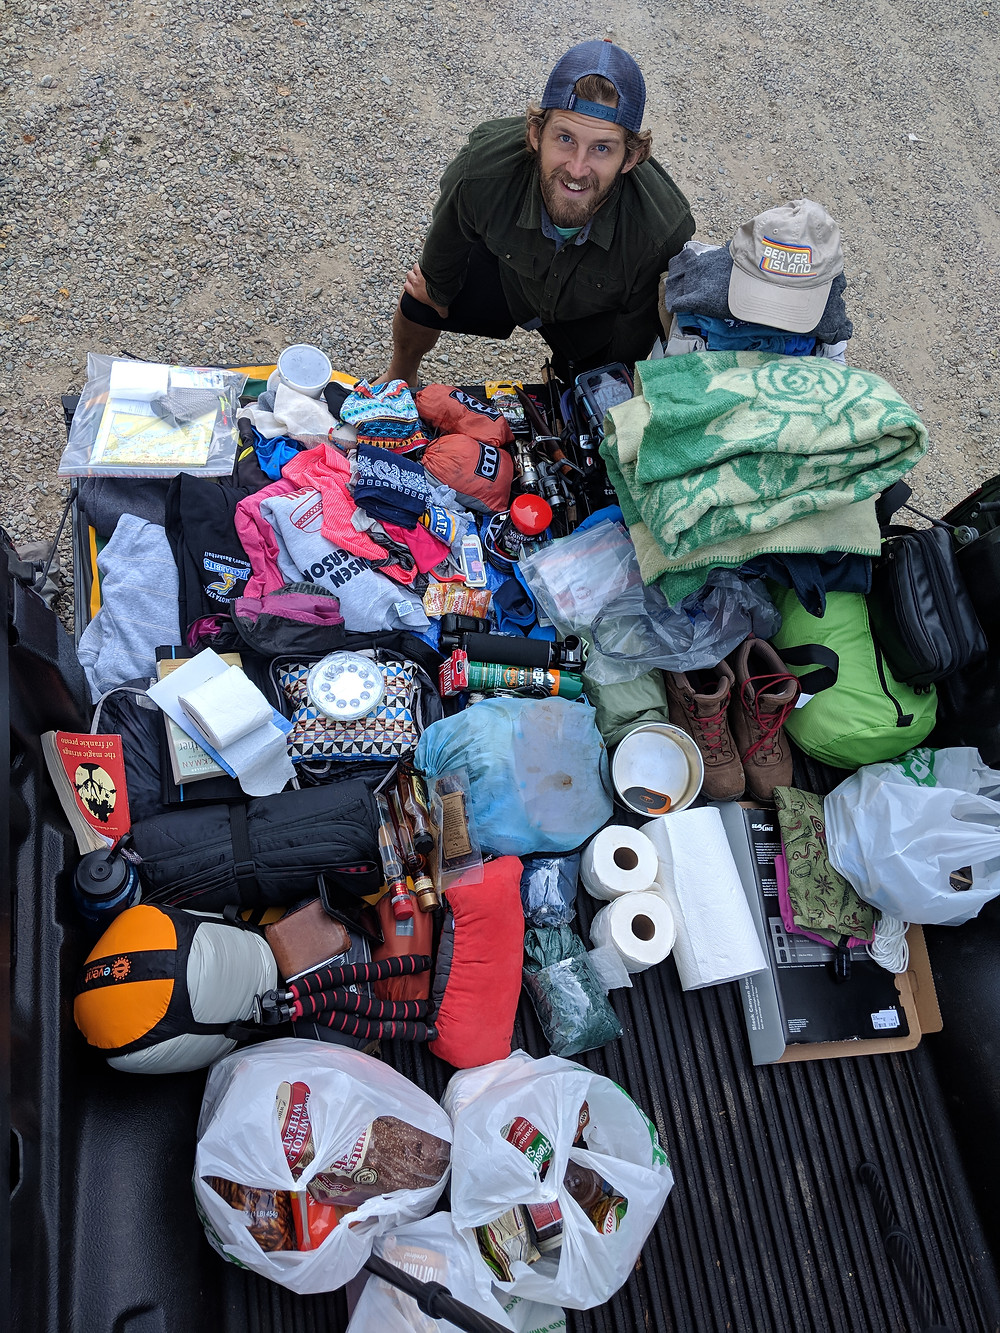 Scott with everything we packed for 5 days in the Boundary Waters